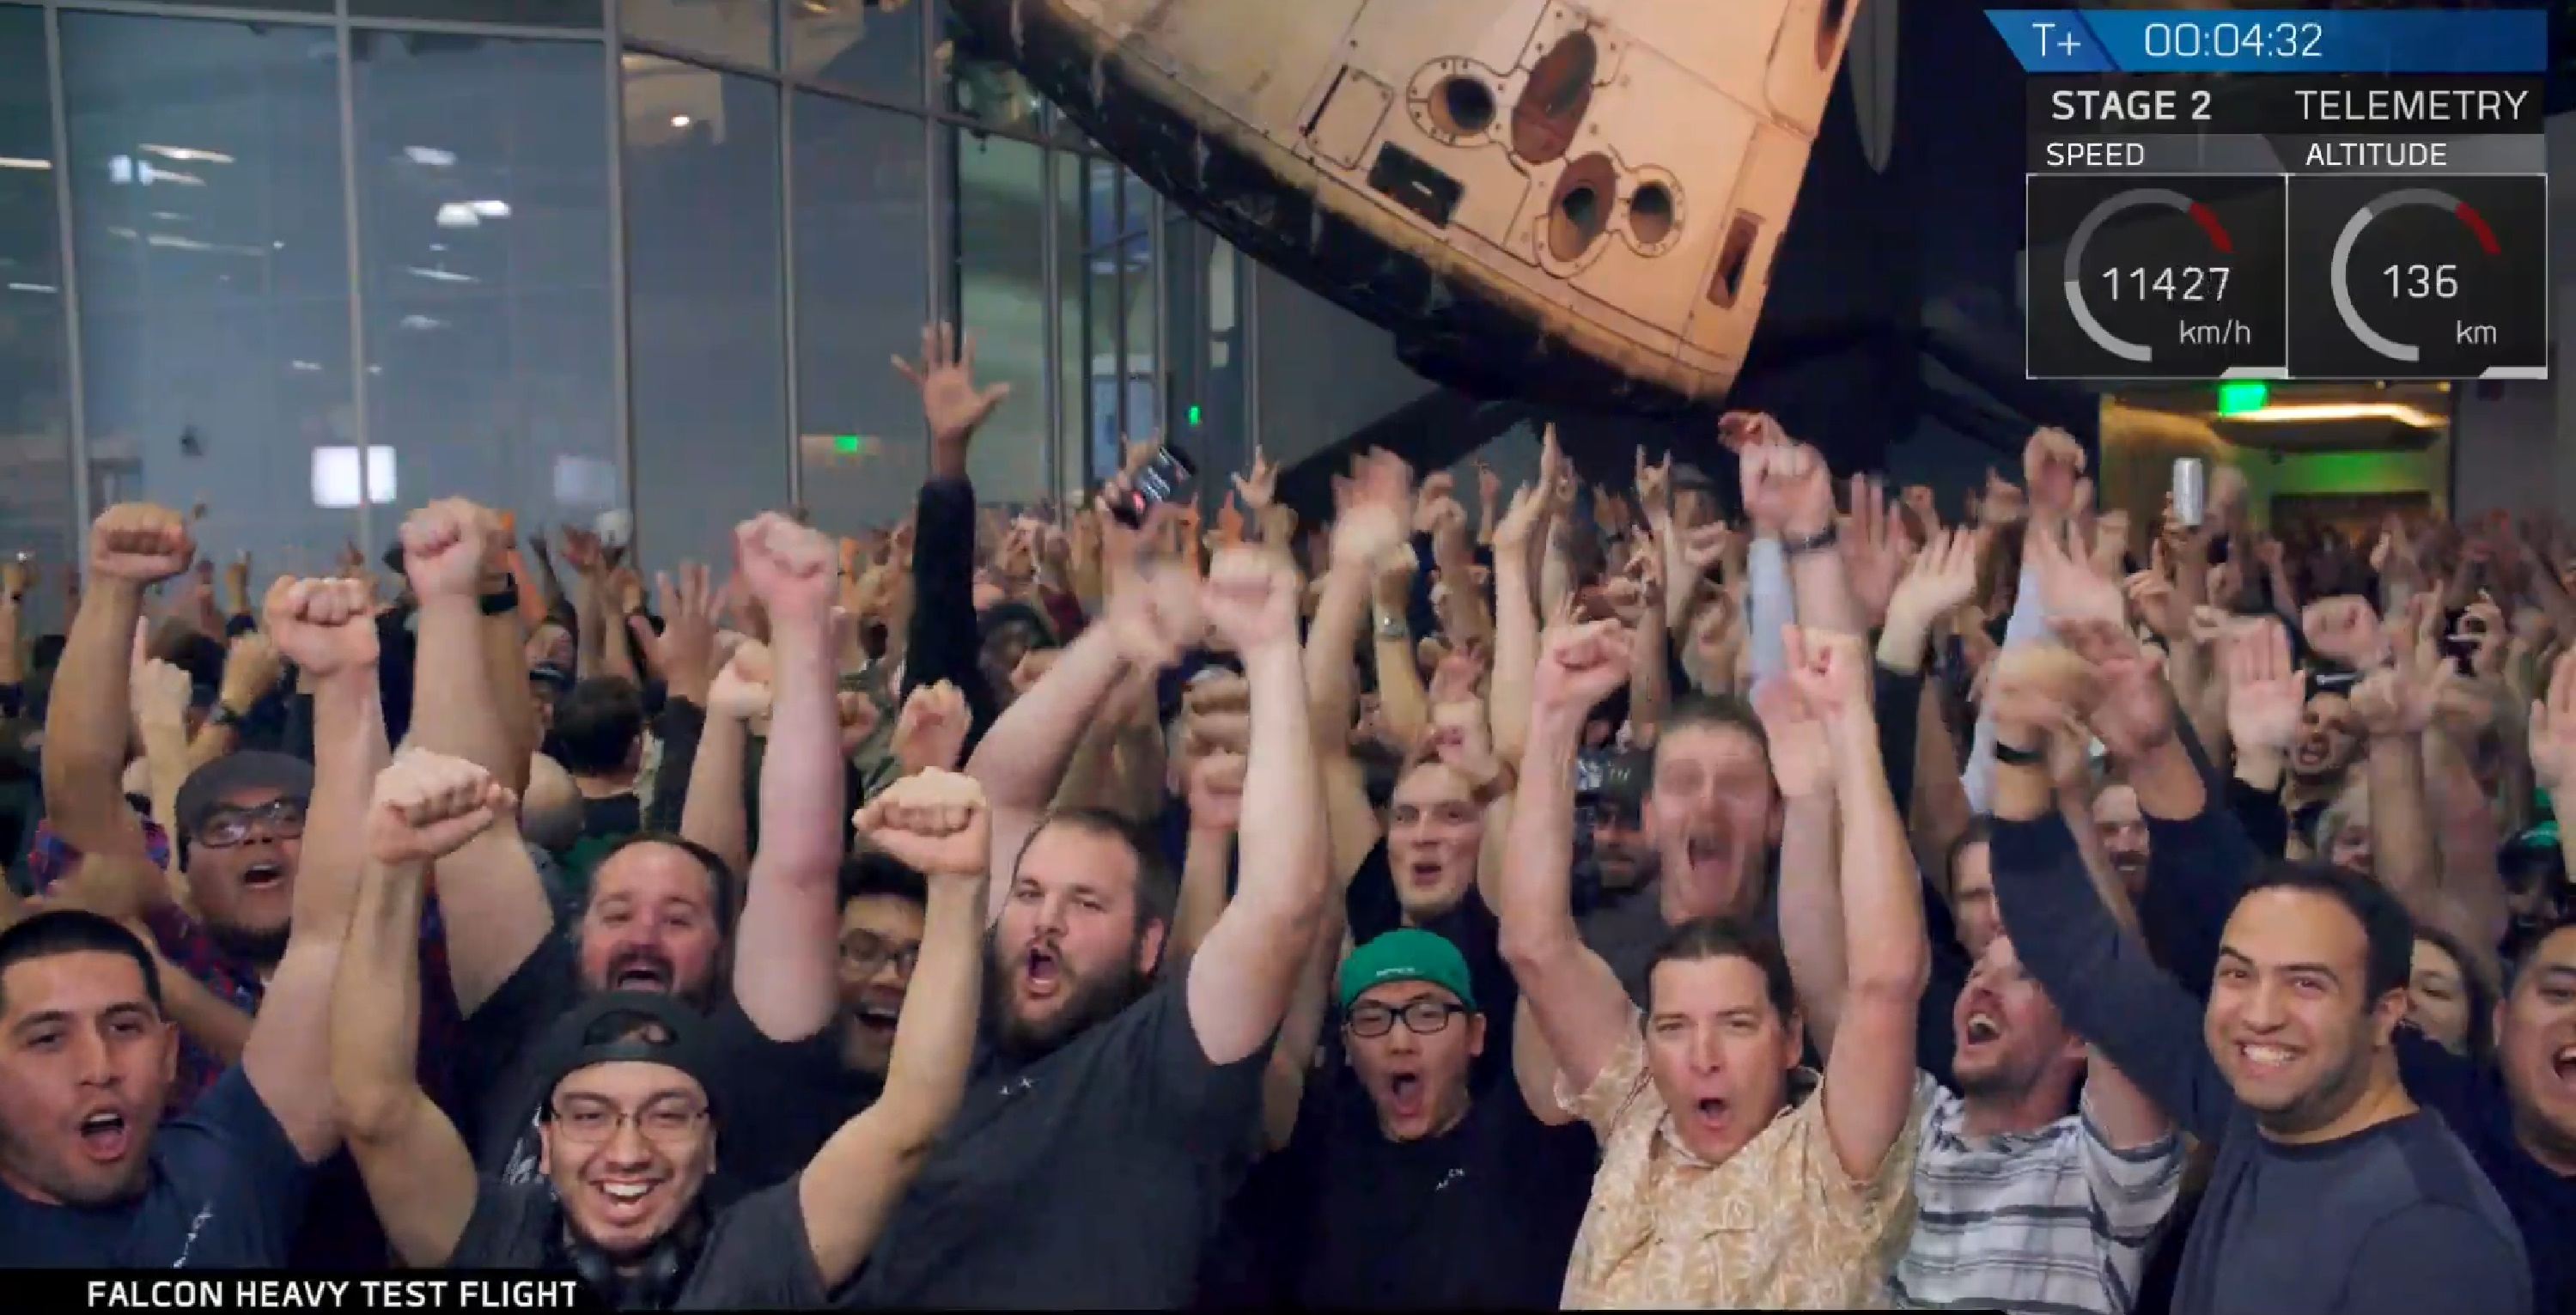 FH celebration (SpaceX)